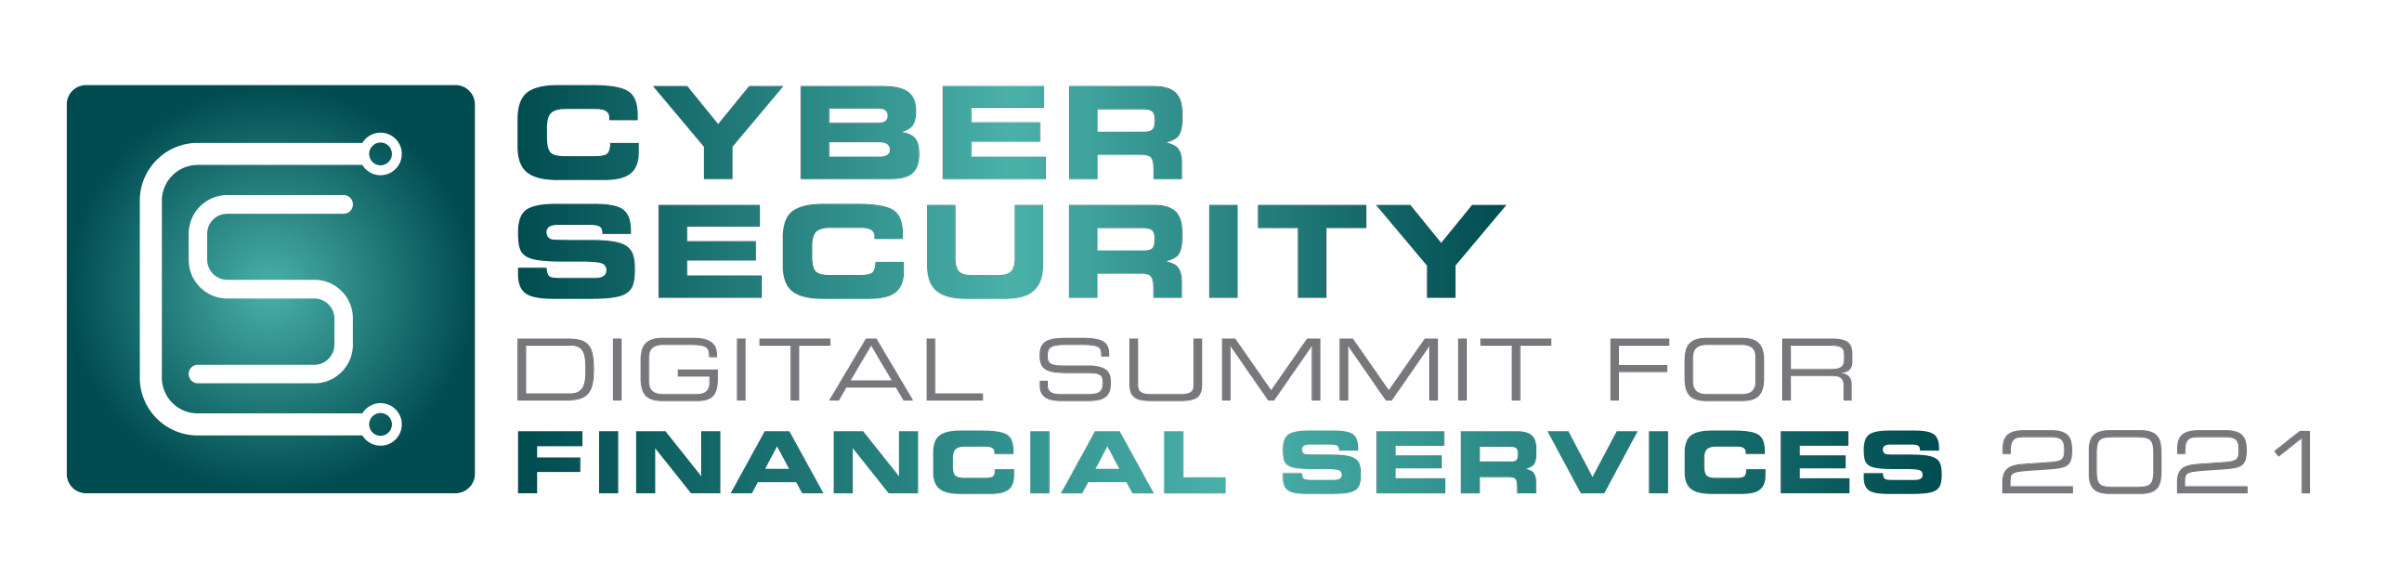 Cyber Security Digital Summit: Financial Services 2021